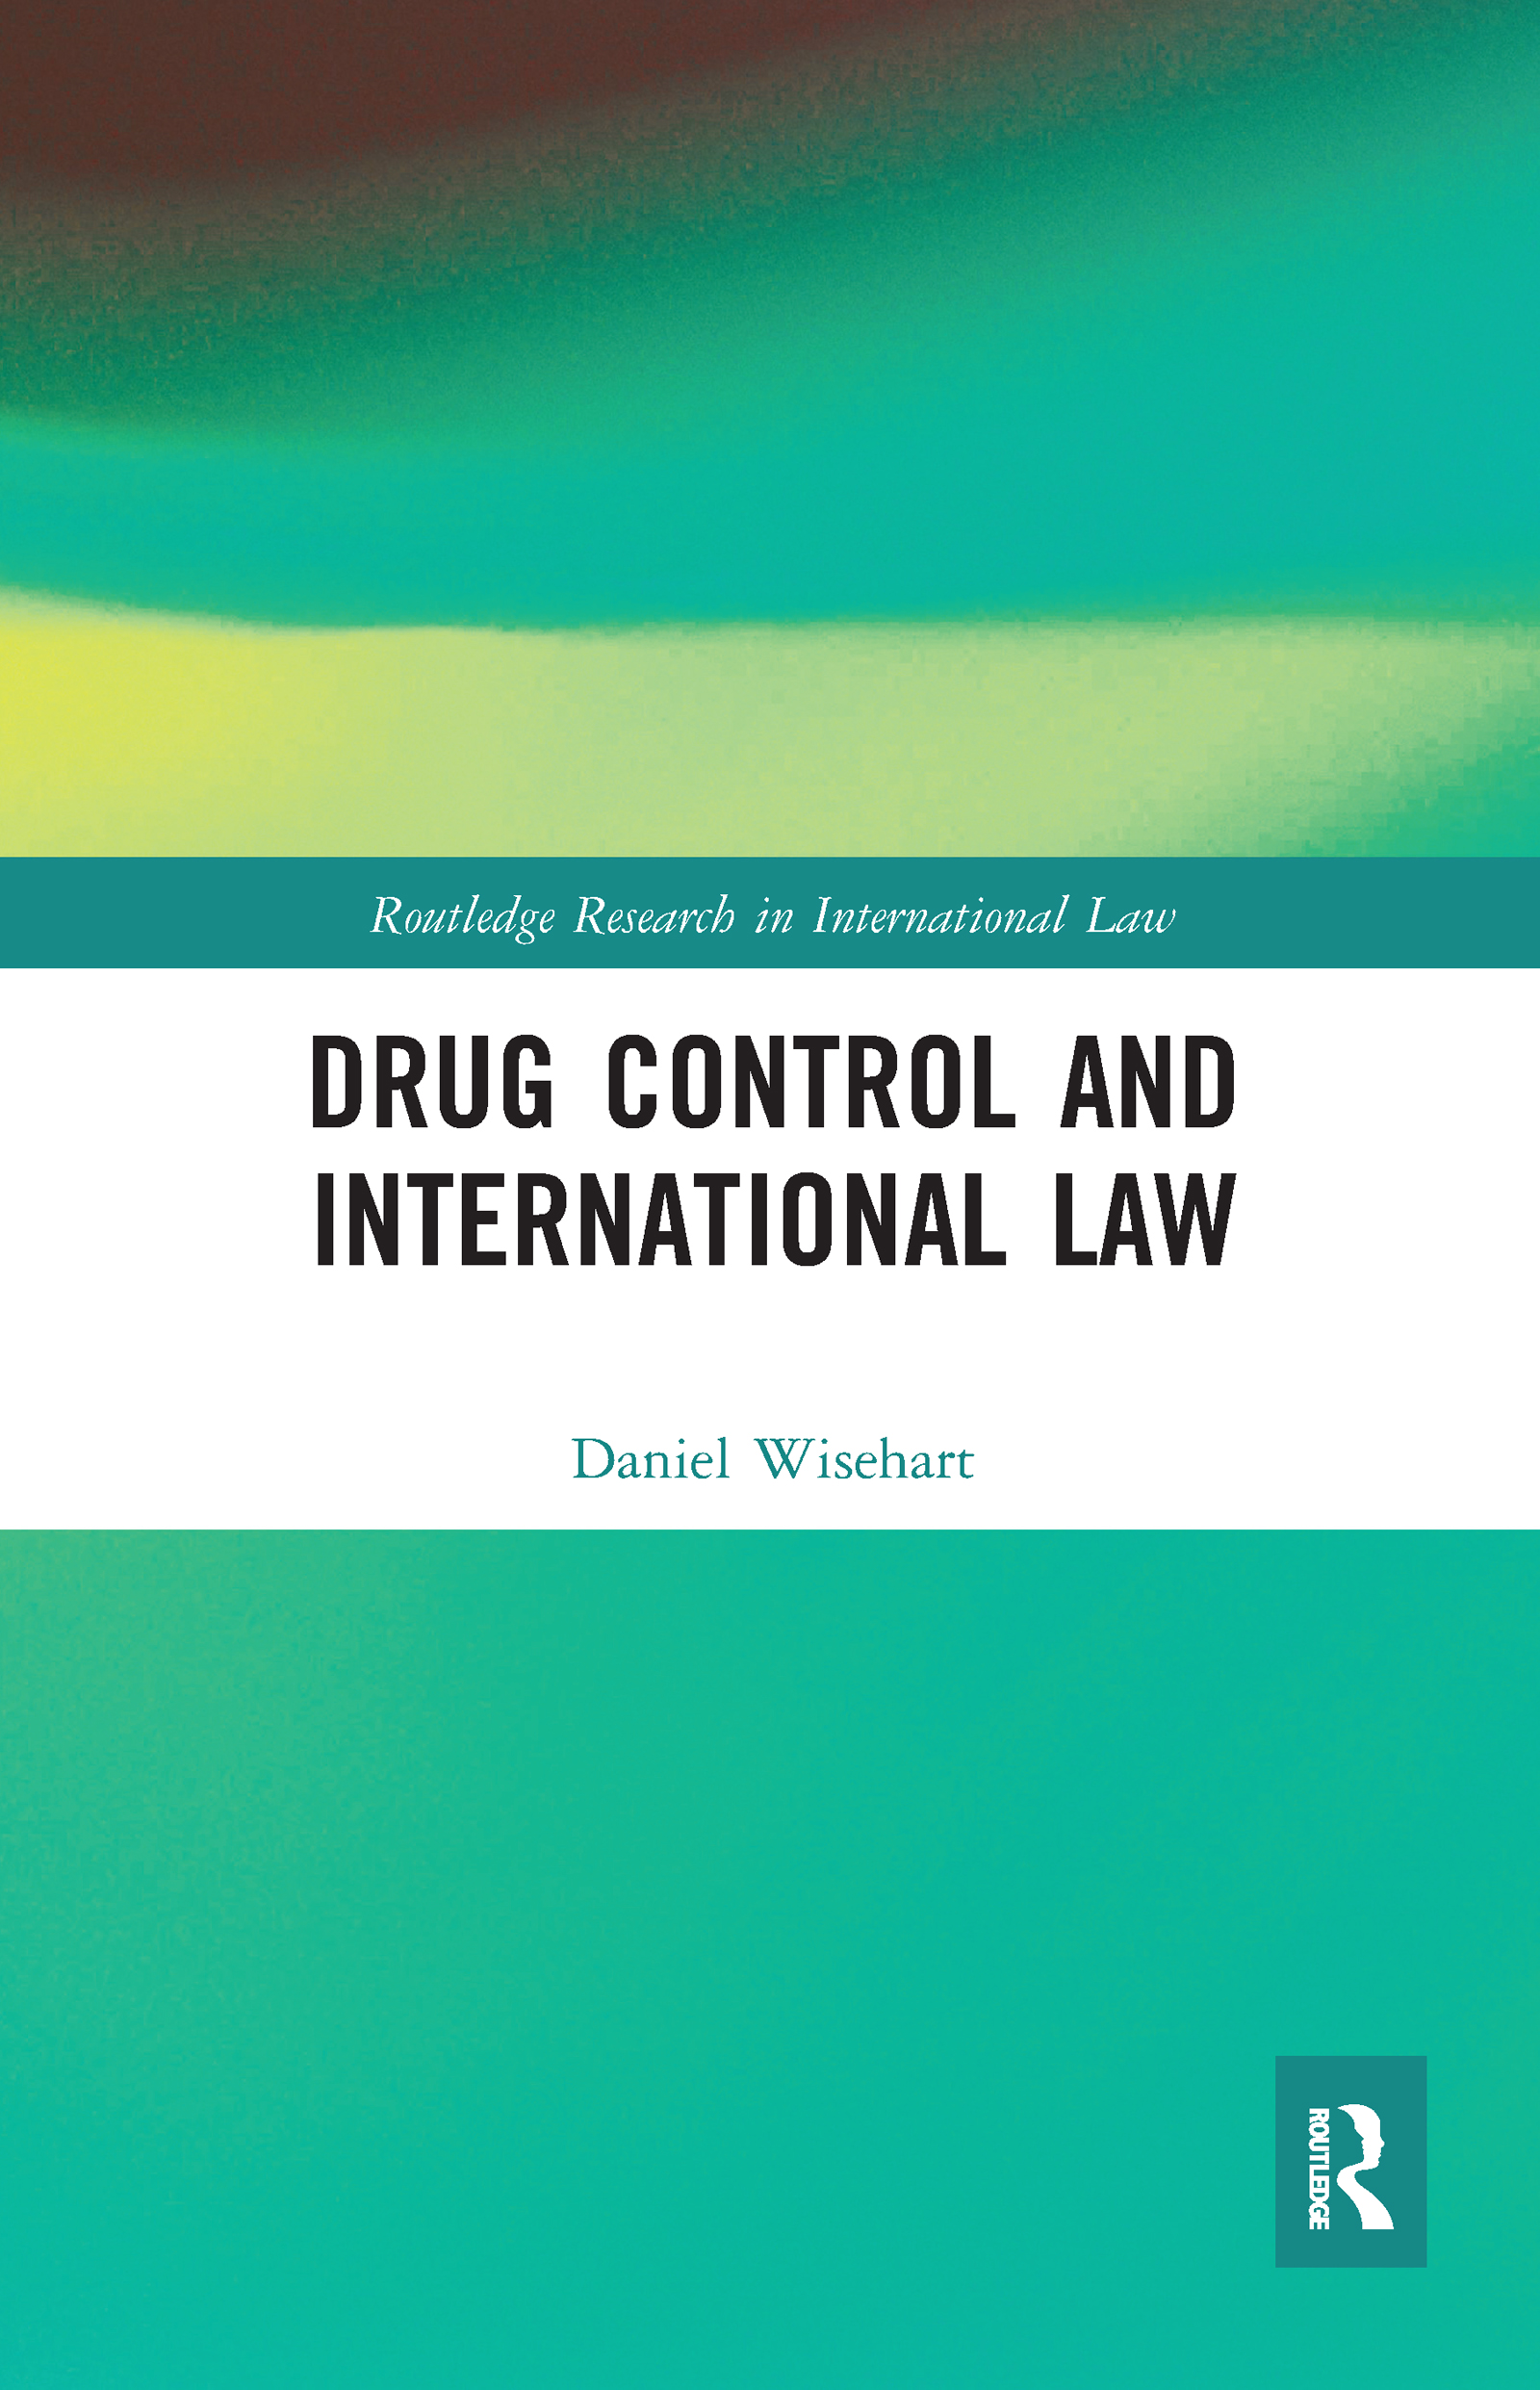 Drug Control and International Law